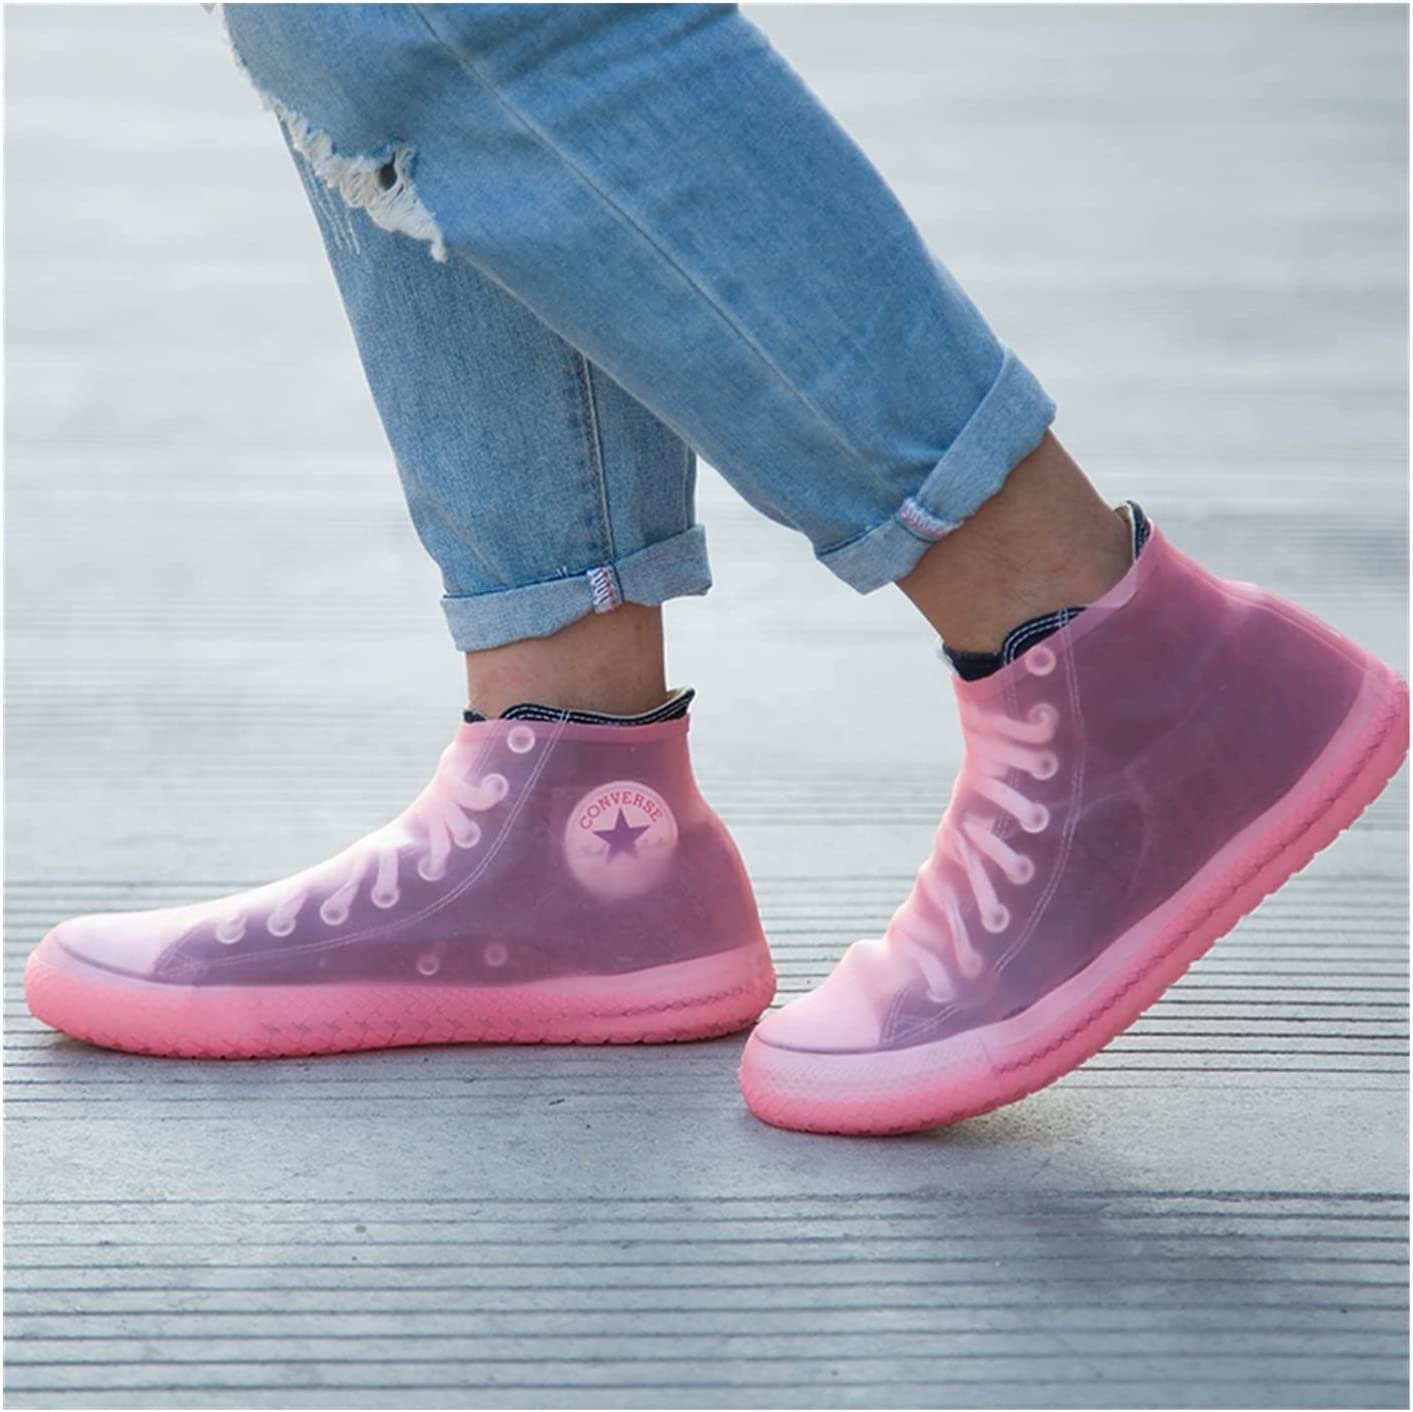 Shoes Cover Women Man Integral High Waterproof Special sale item Mould Popular brand in the world Ra Reusable